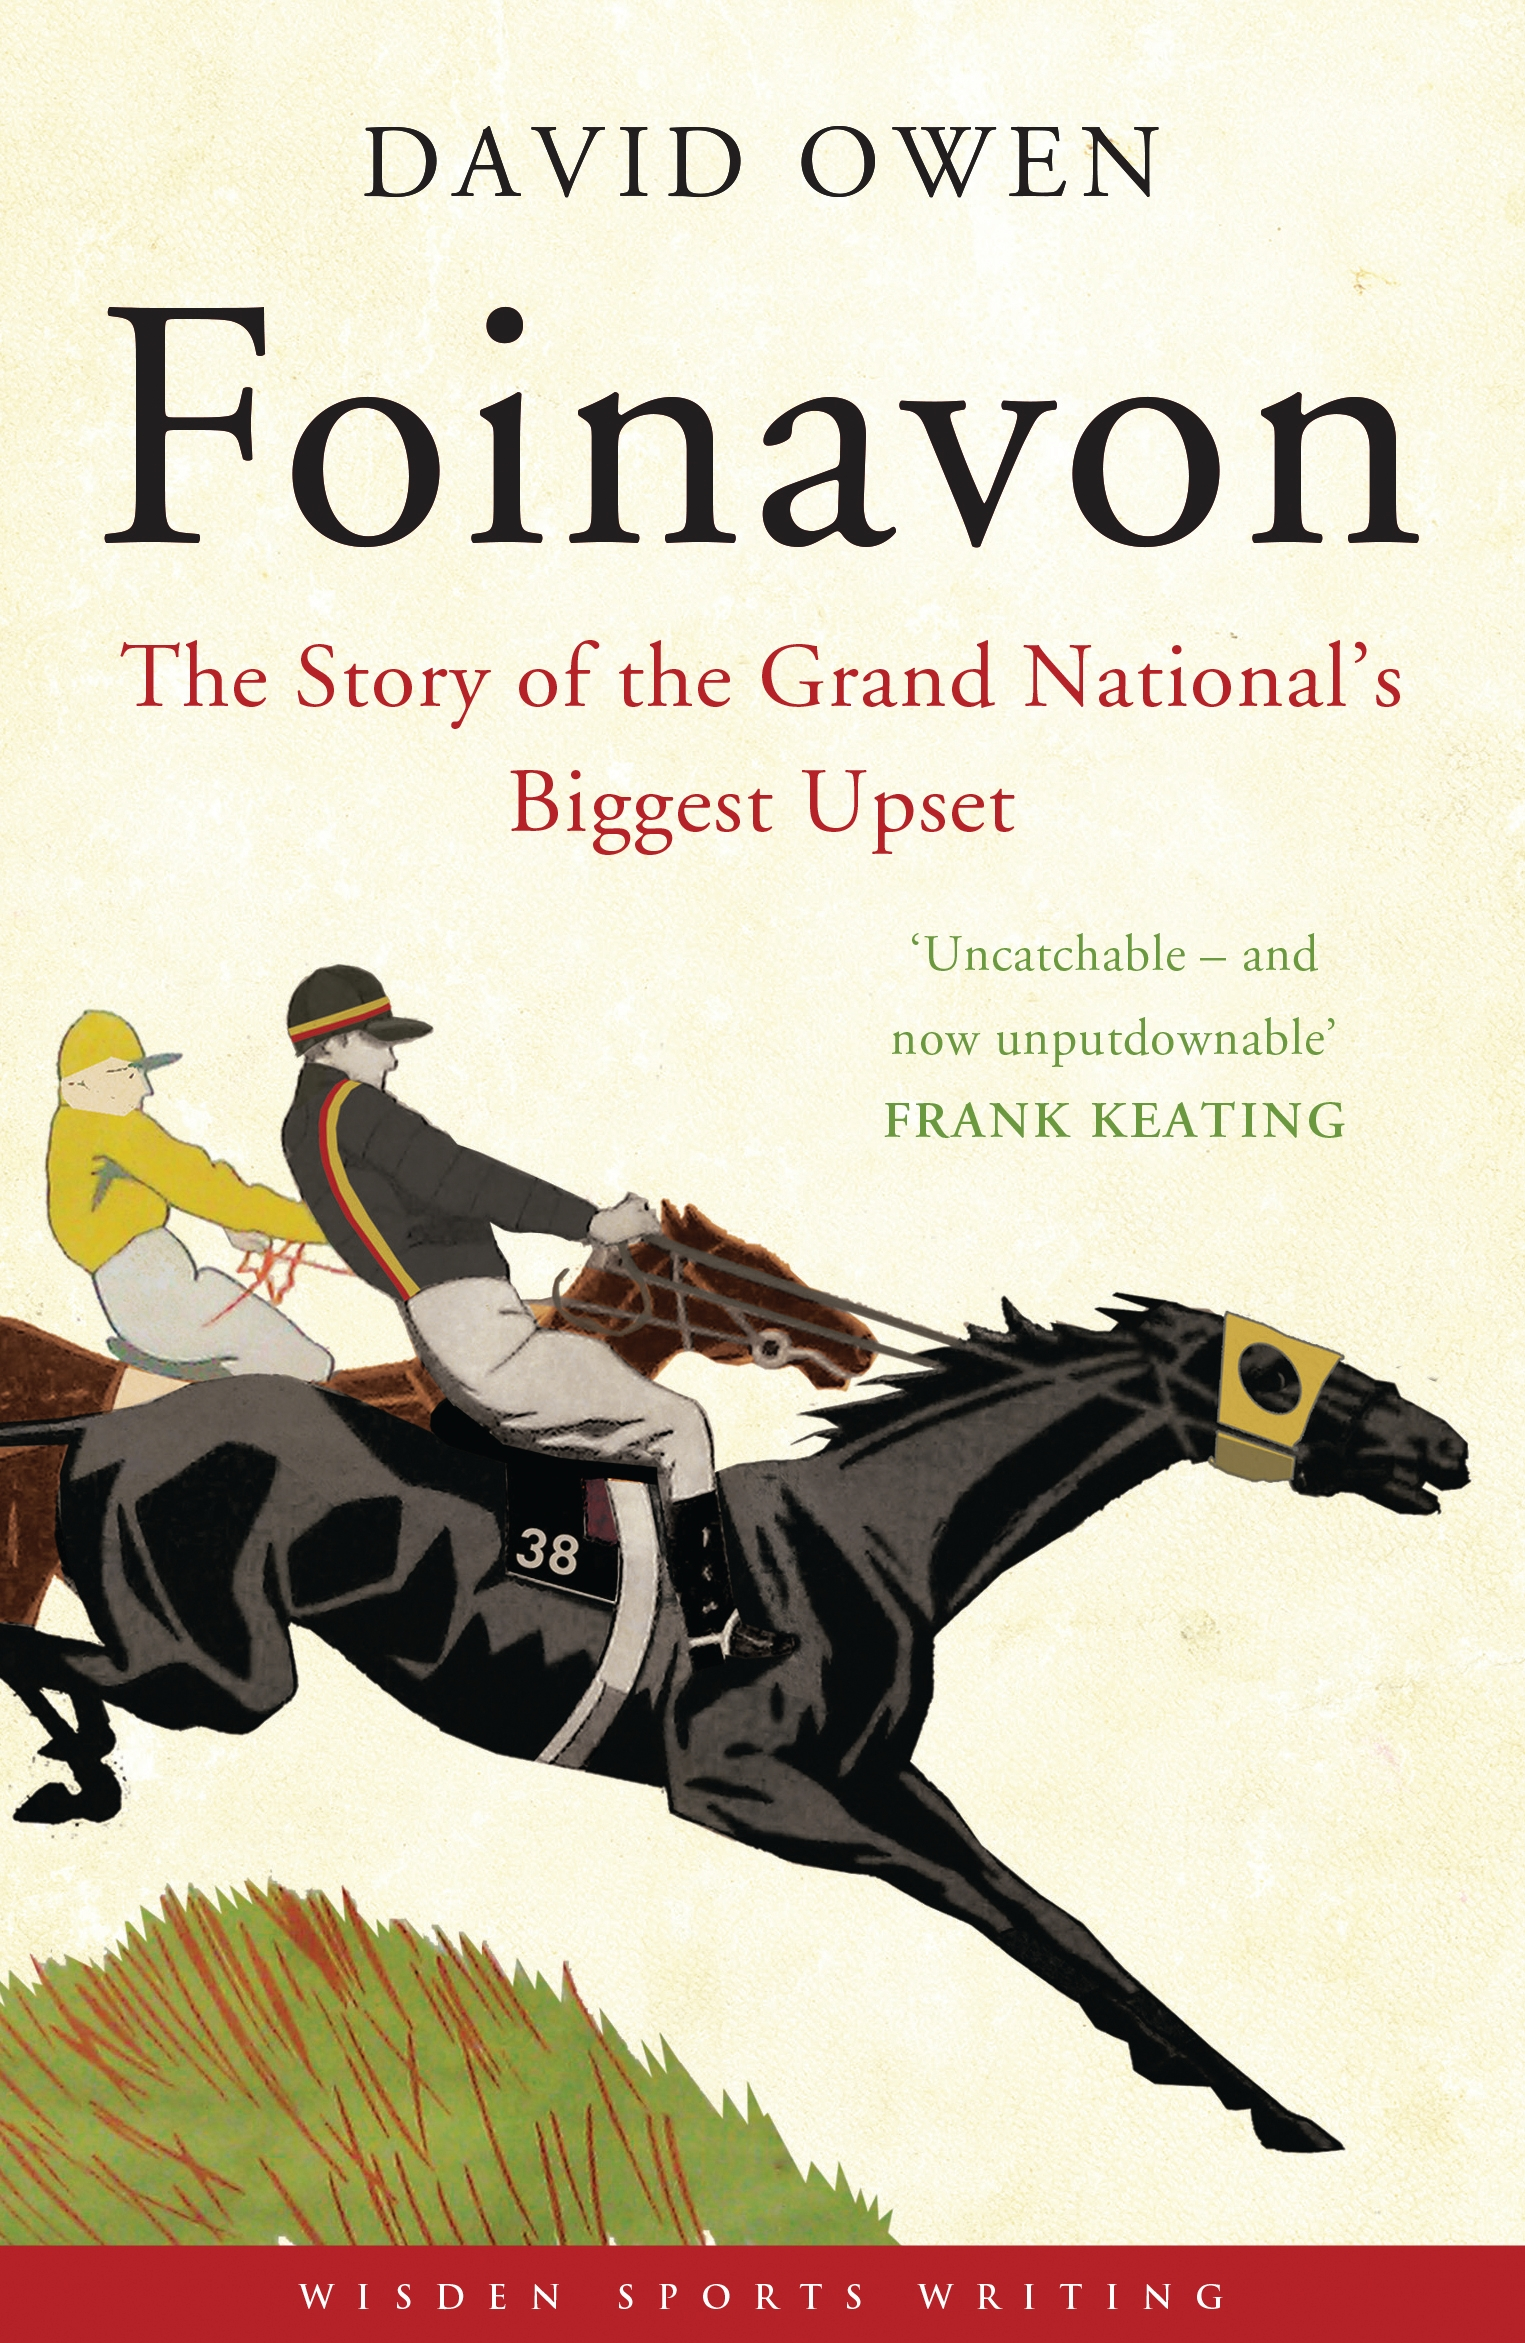 Foinavon The Story of the Grand National?s Biggest Upset